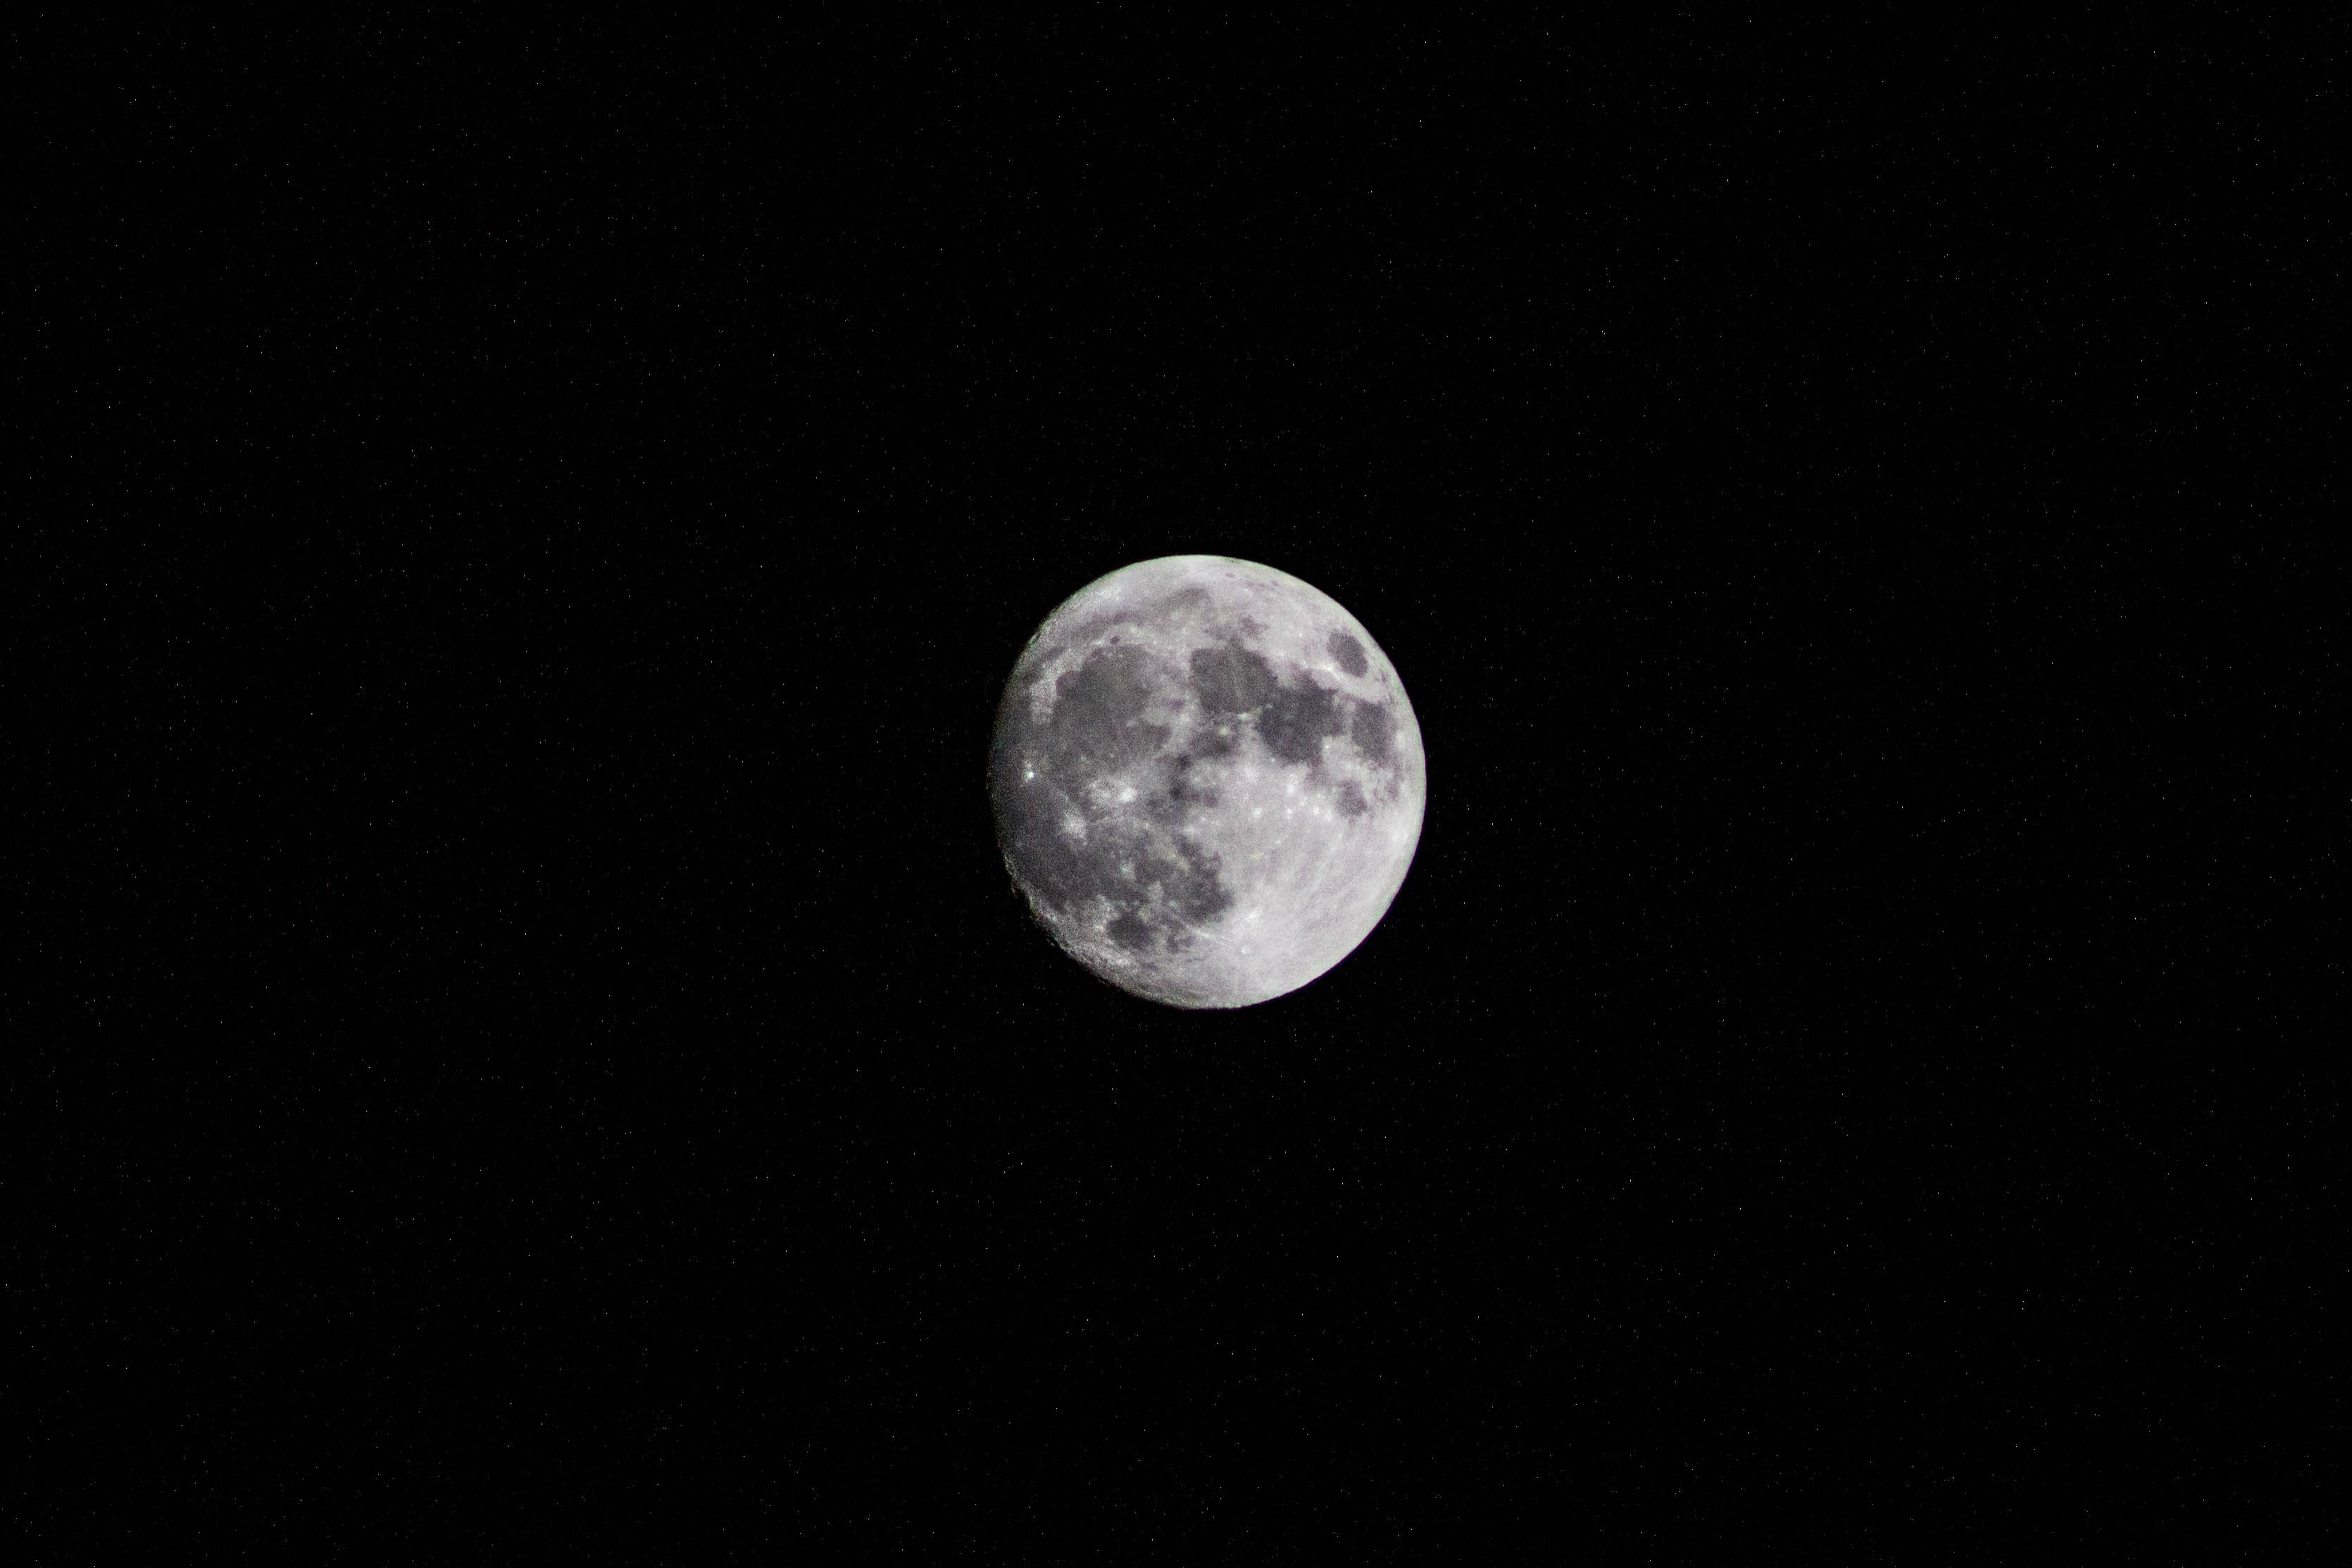 The moon shines against a pitch black sky at night